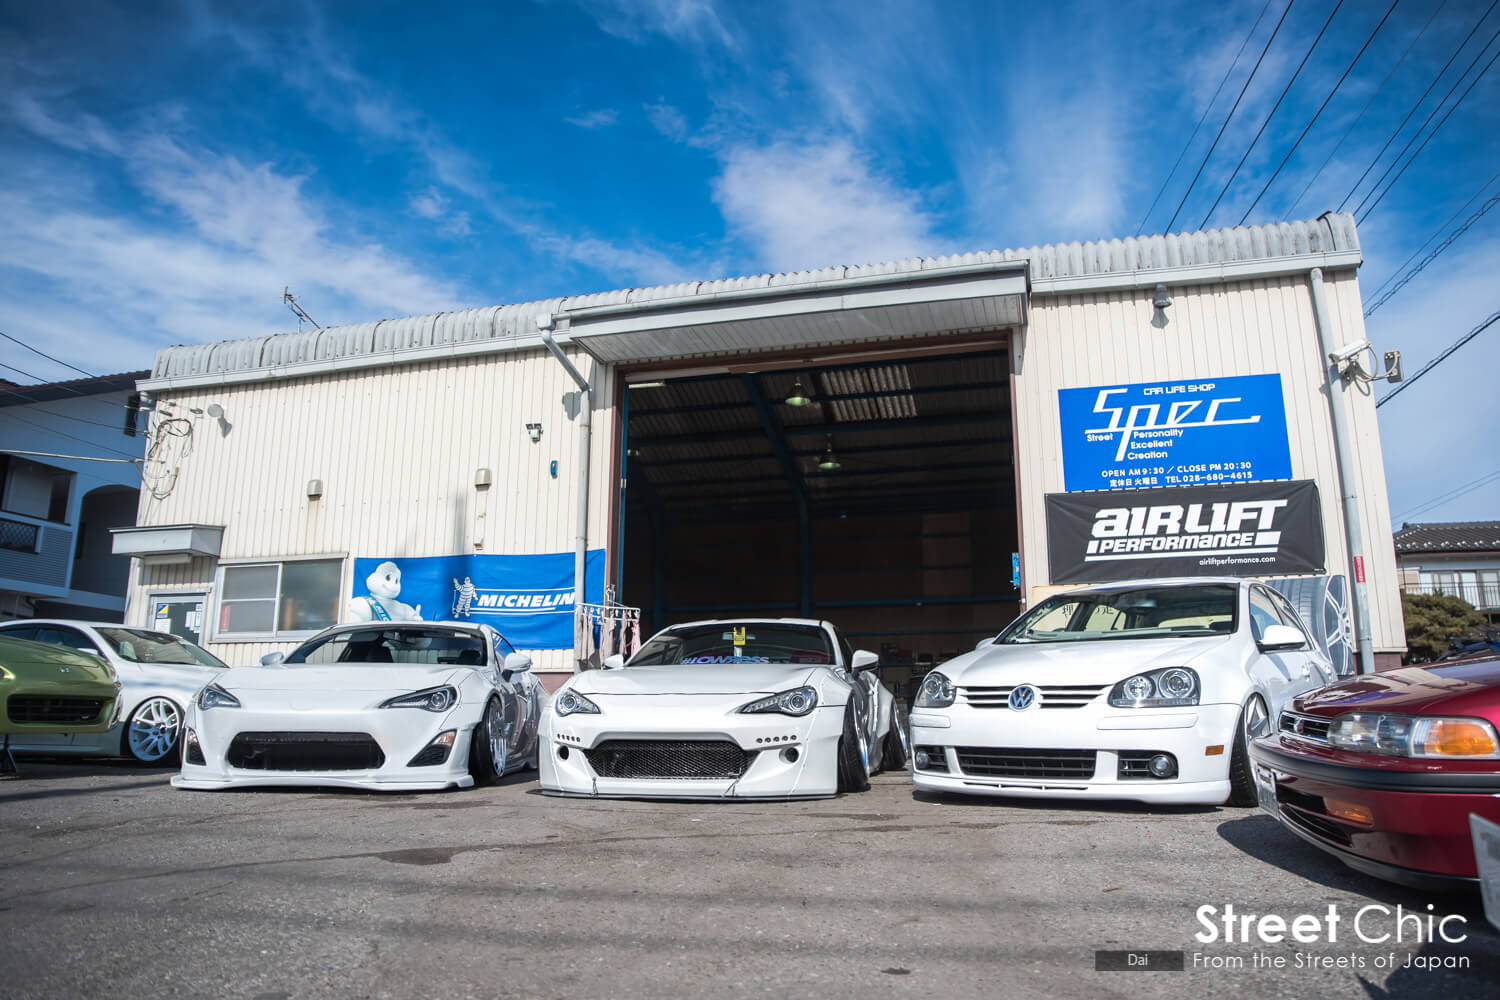 AirLiftエアサス、栃木のSpec. Car life shop